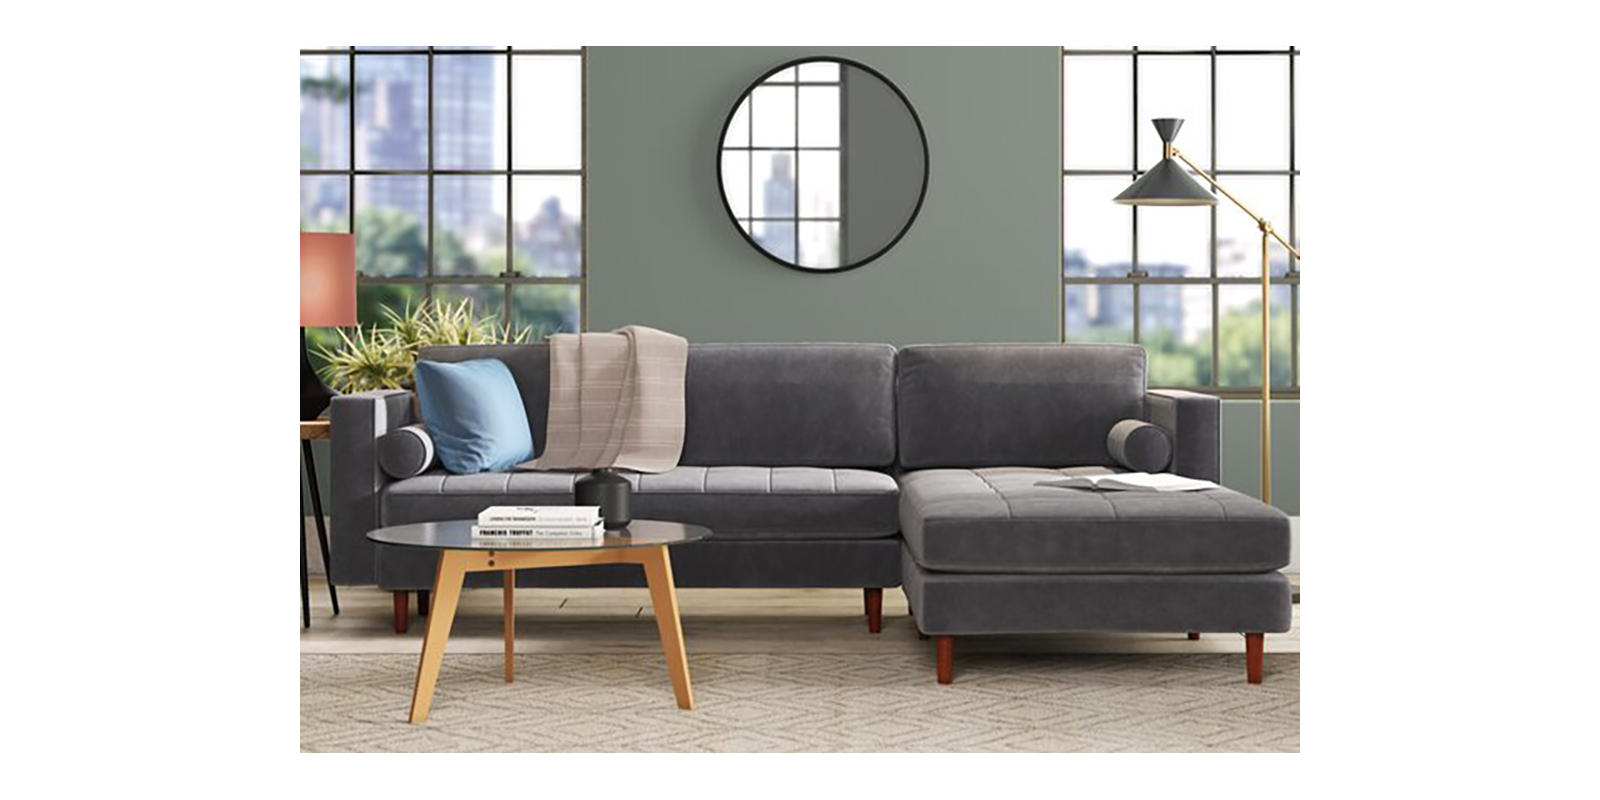 Save on a sectional from AllModern